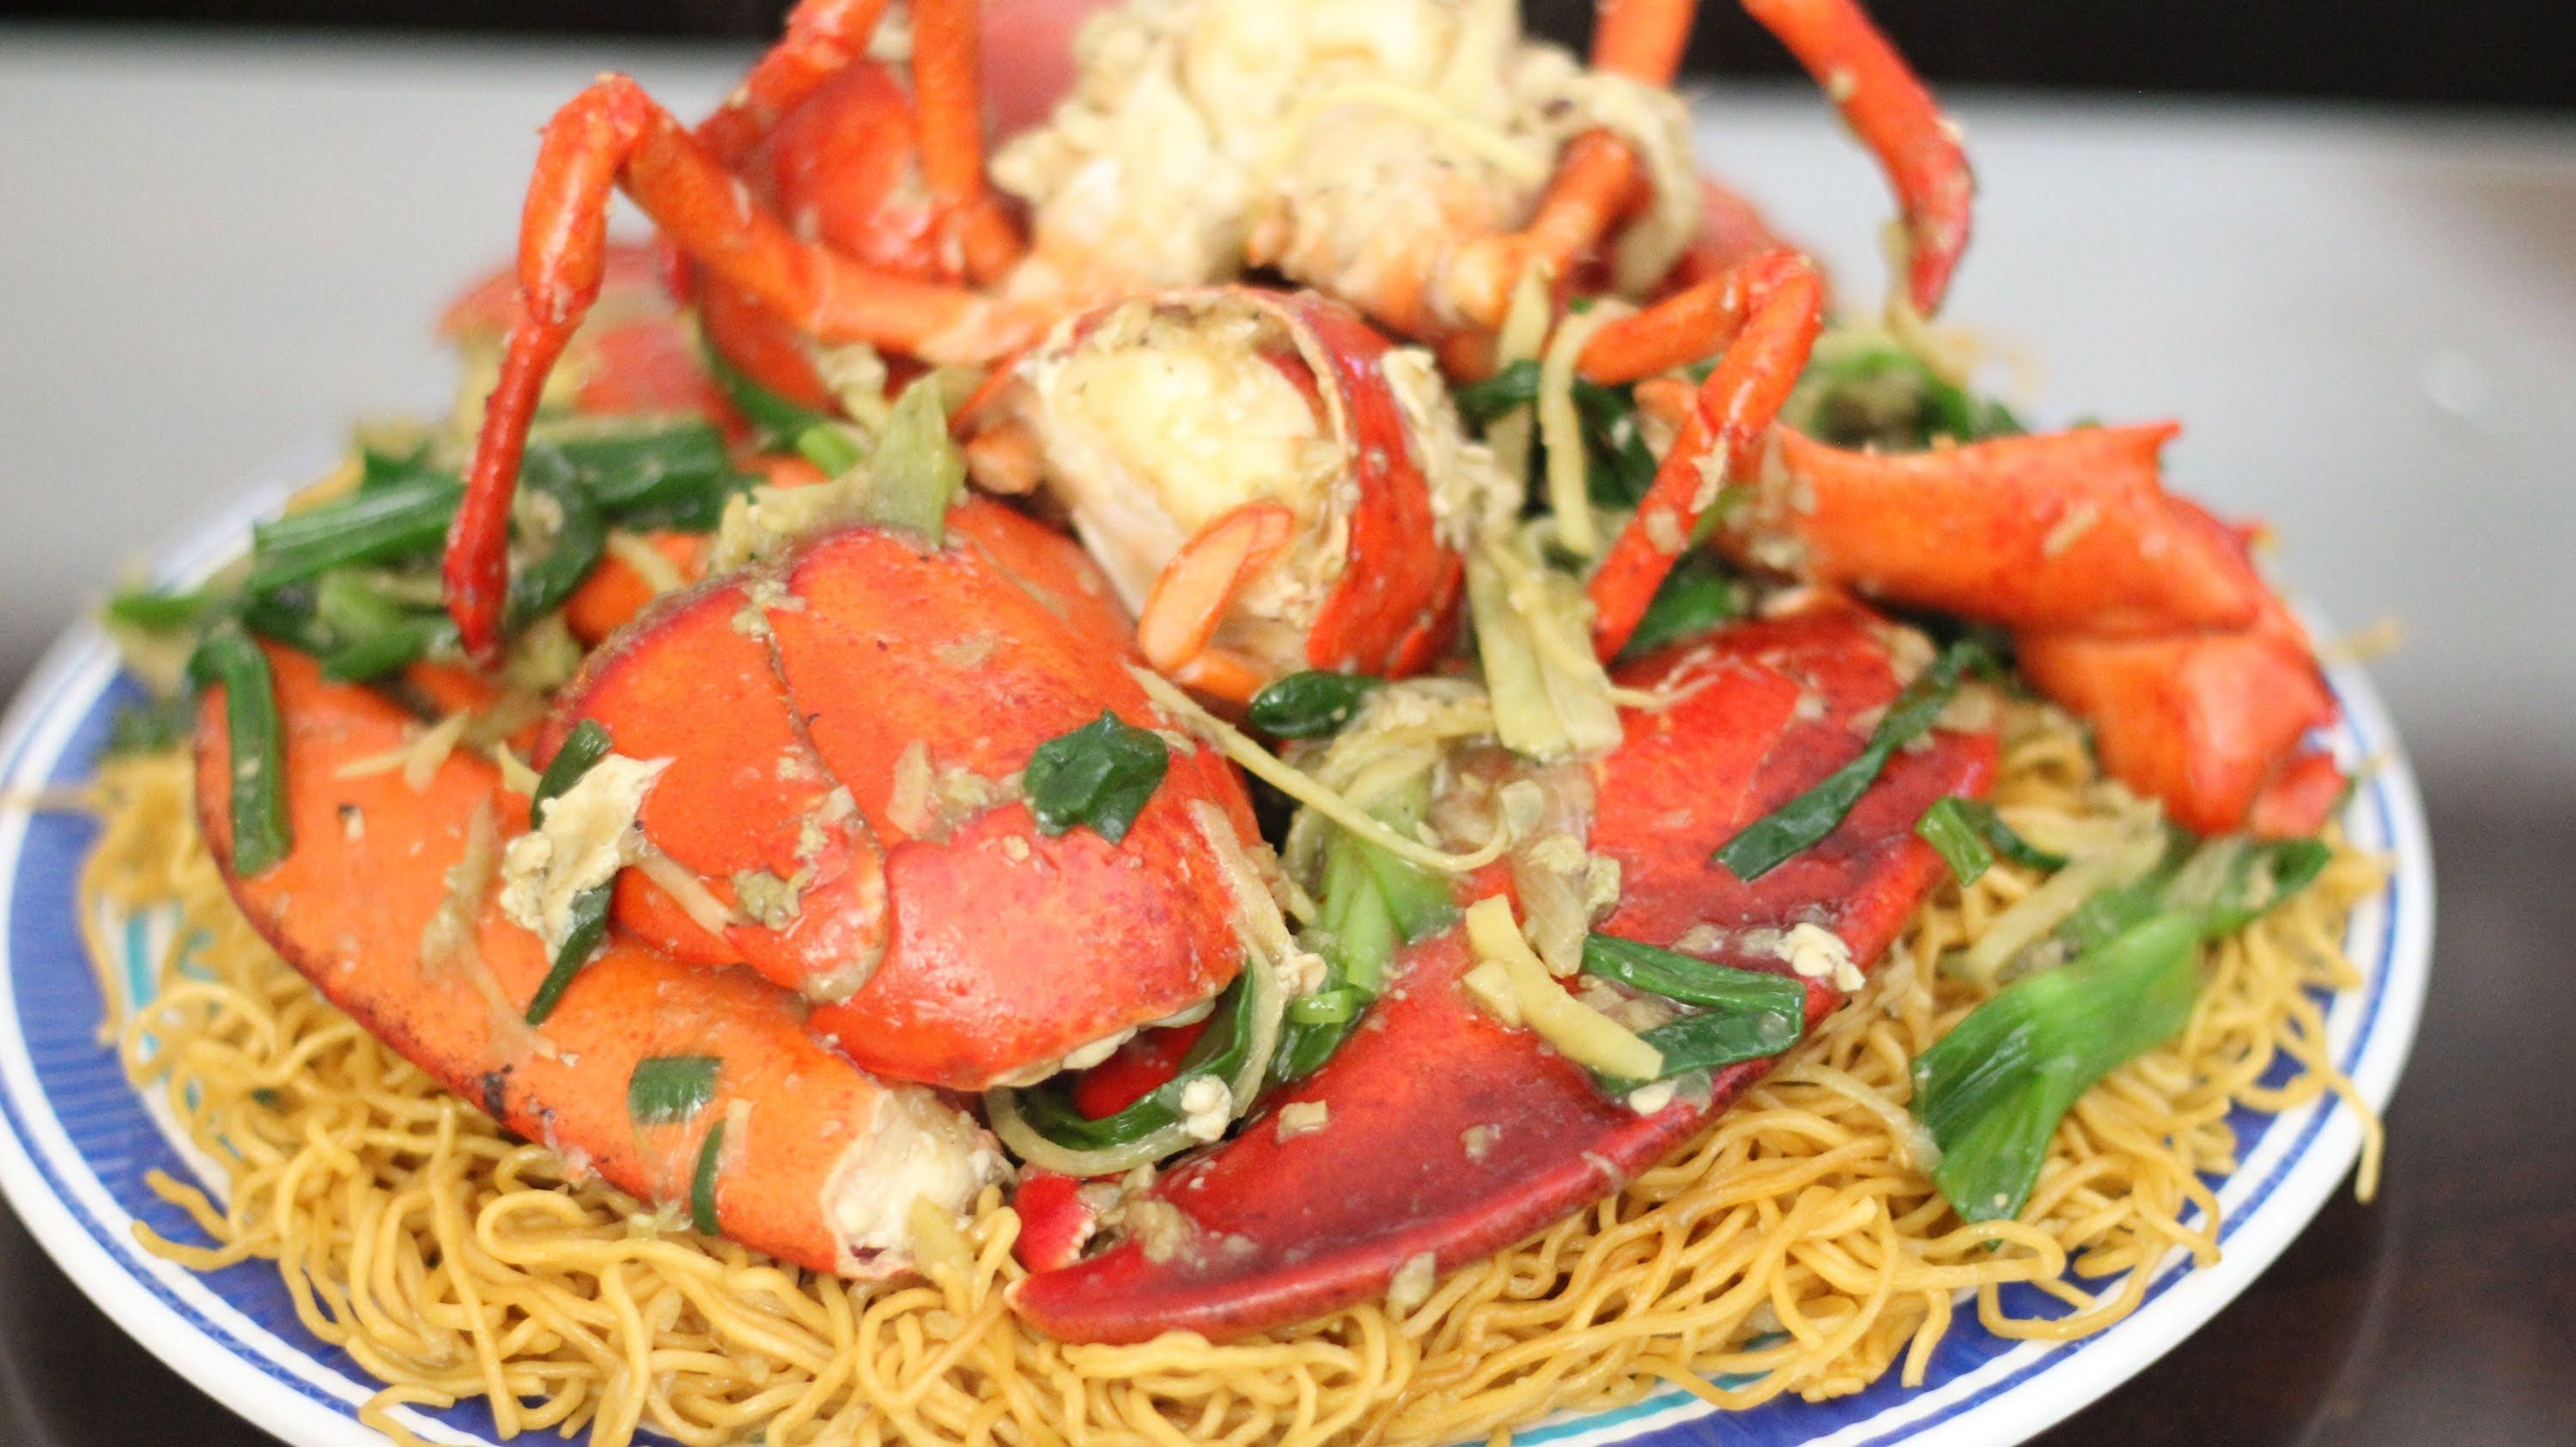 Stir-fry Lobster with Ginger and Scallions (Tom Hum Xao Hanh Gung)   VIETNAM 9   Pinterest ...